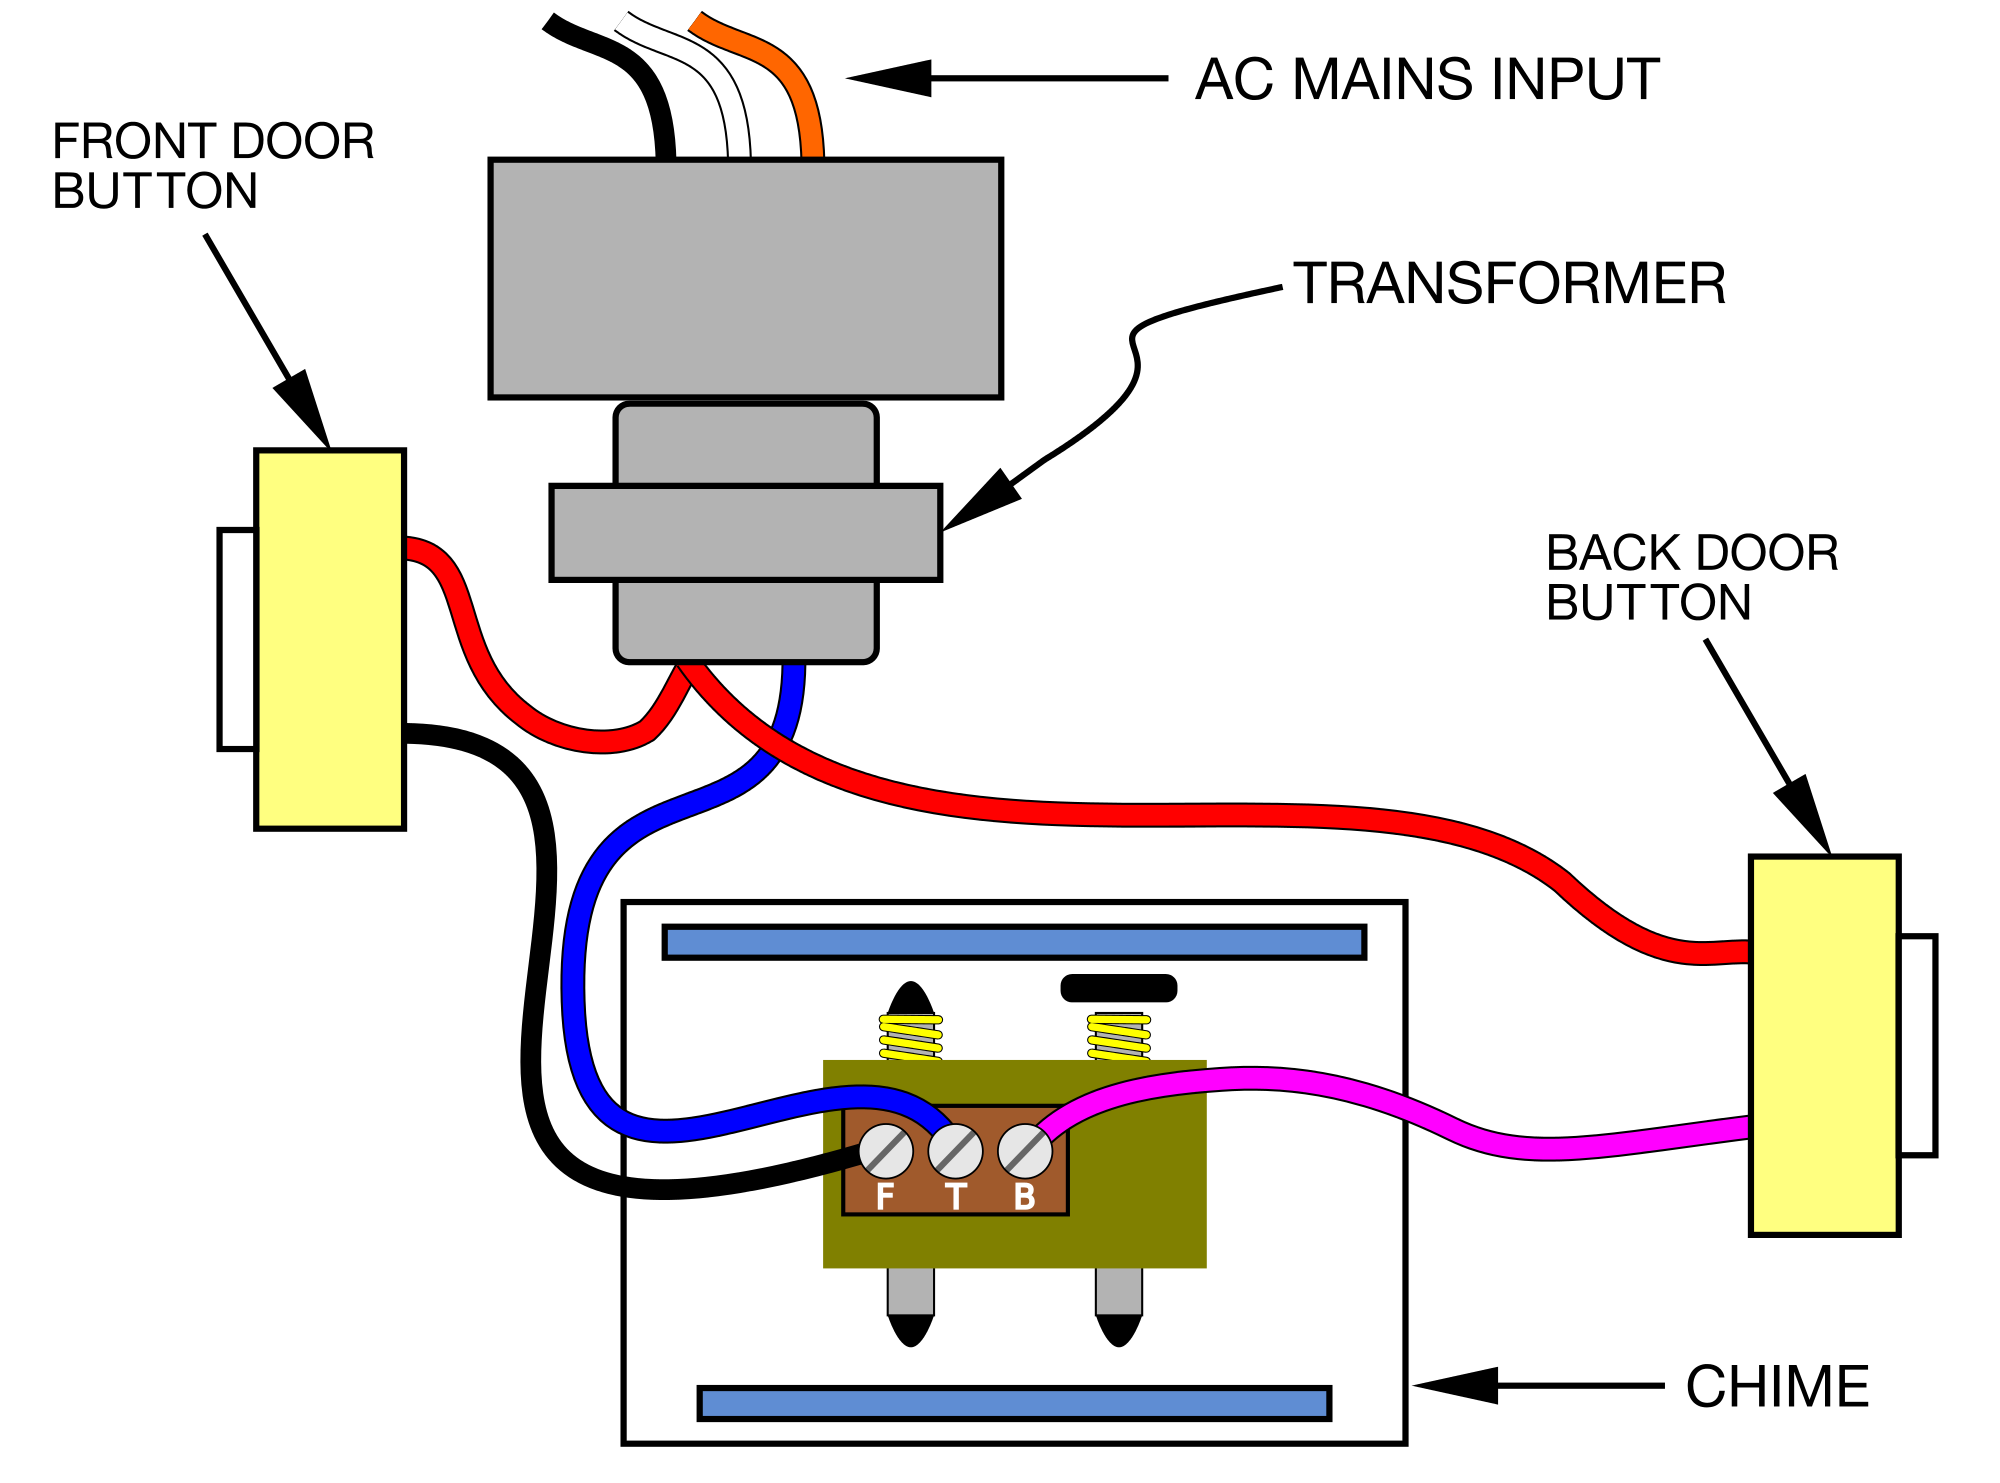 File:Doorbell Wiring Pictorial Diagram.svg.